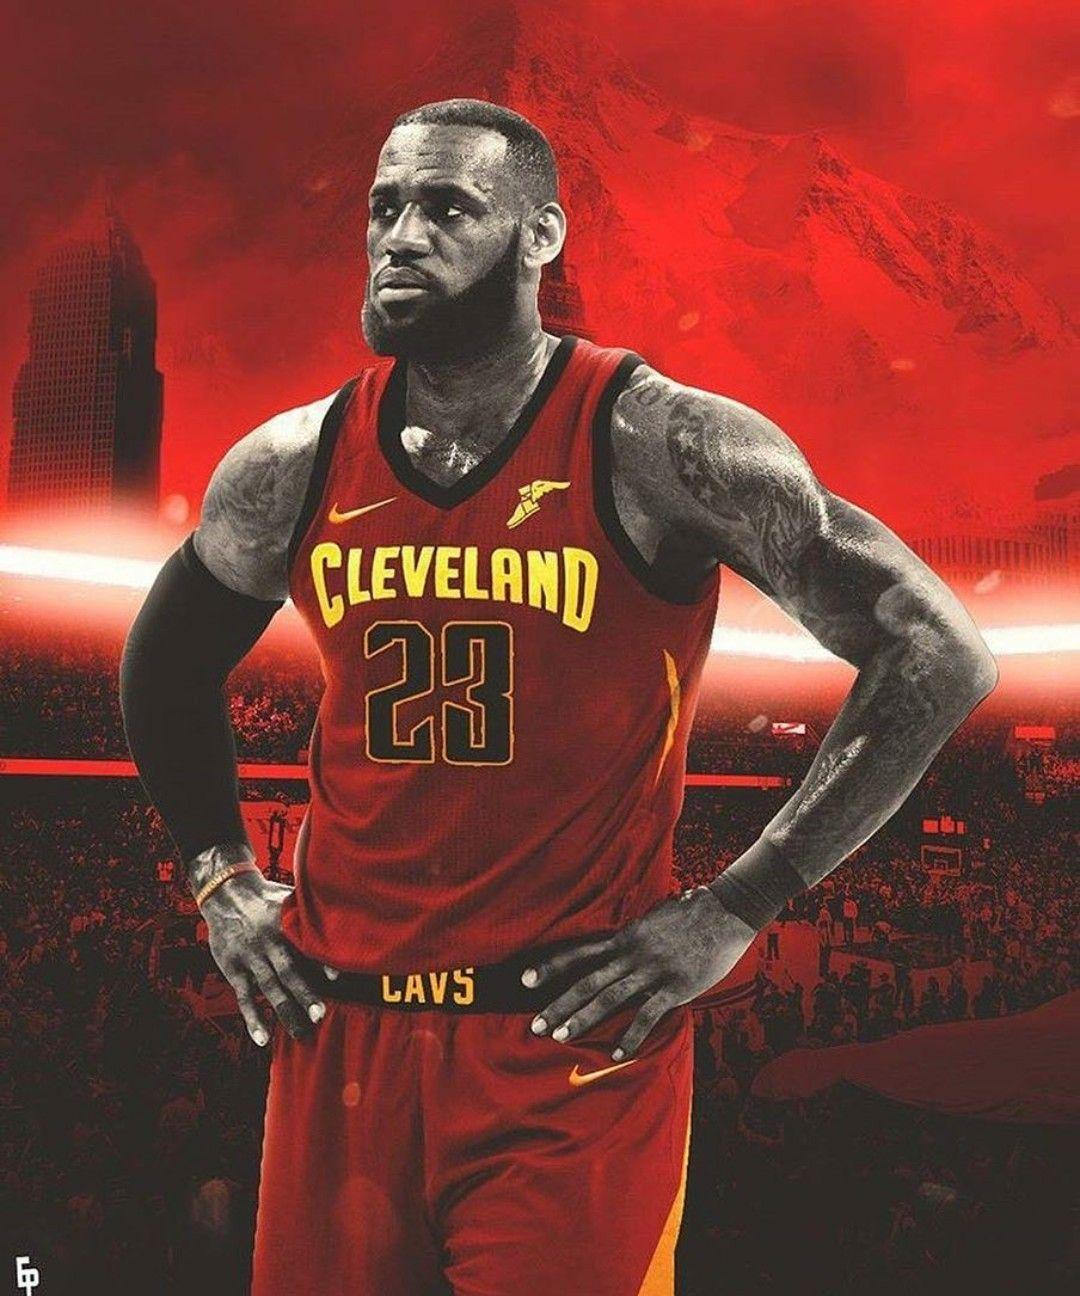 Cleveland Cavaliers New Jersey 2017 2018 Looks Savage On Lebron